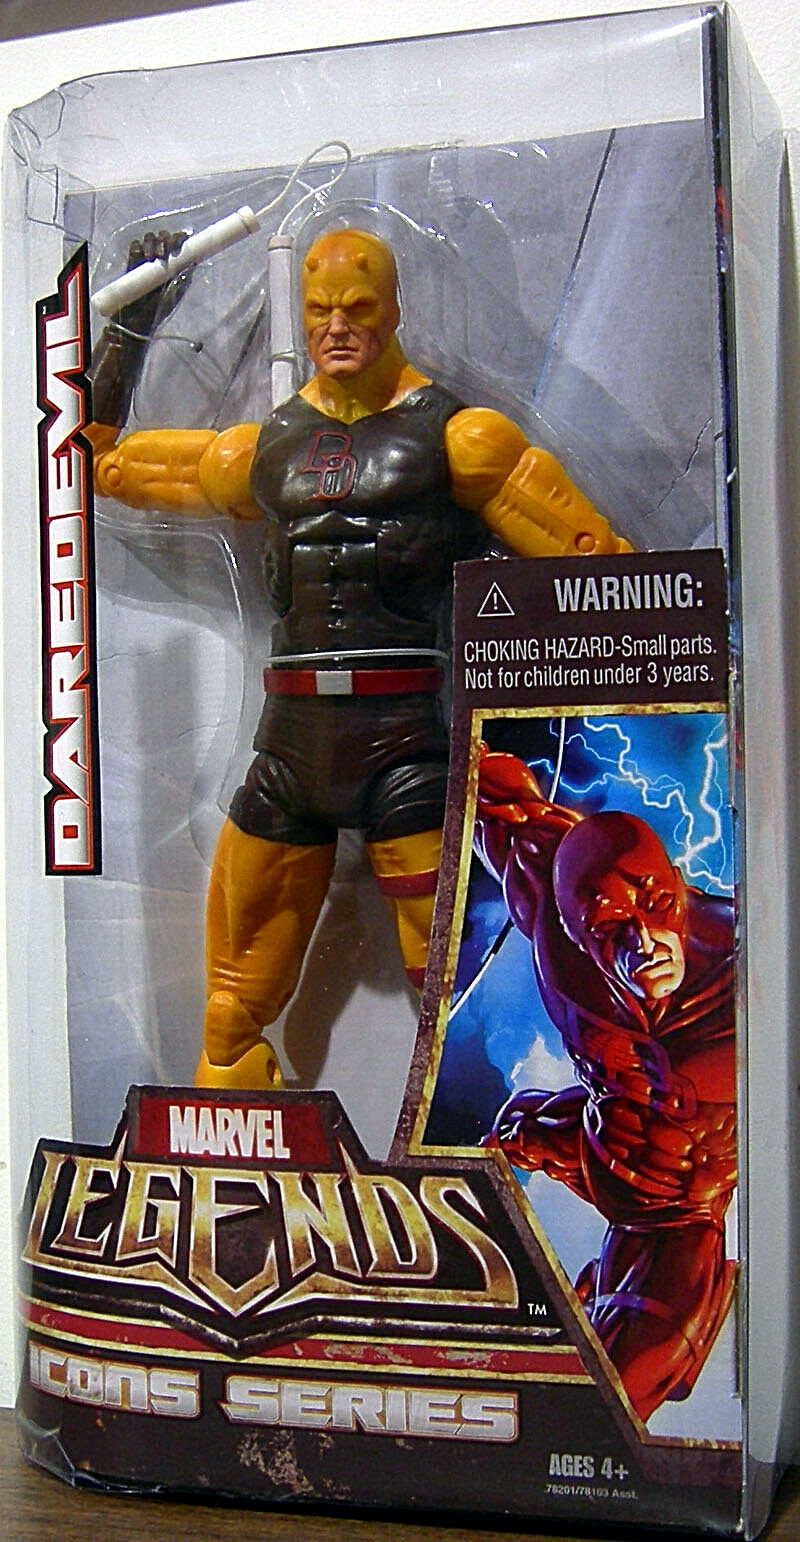 MARVEL LEGENDS ICONS Series Collection_YELLOW DAREDEVIL 12   figure_New_Unopened